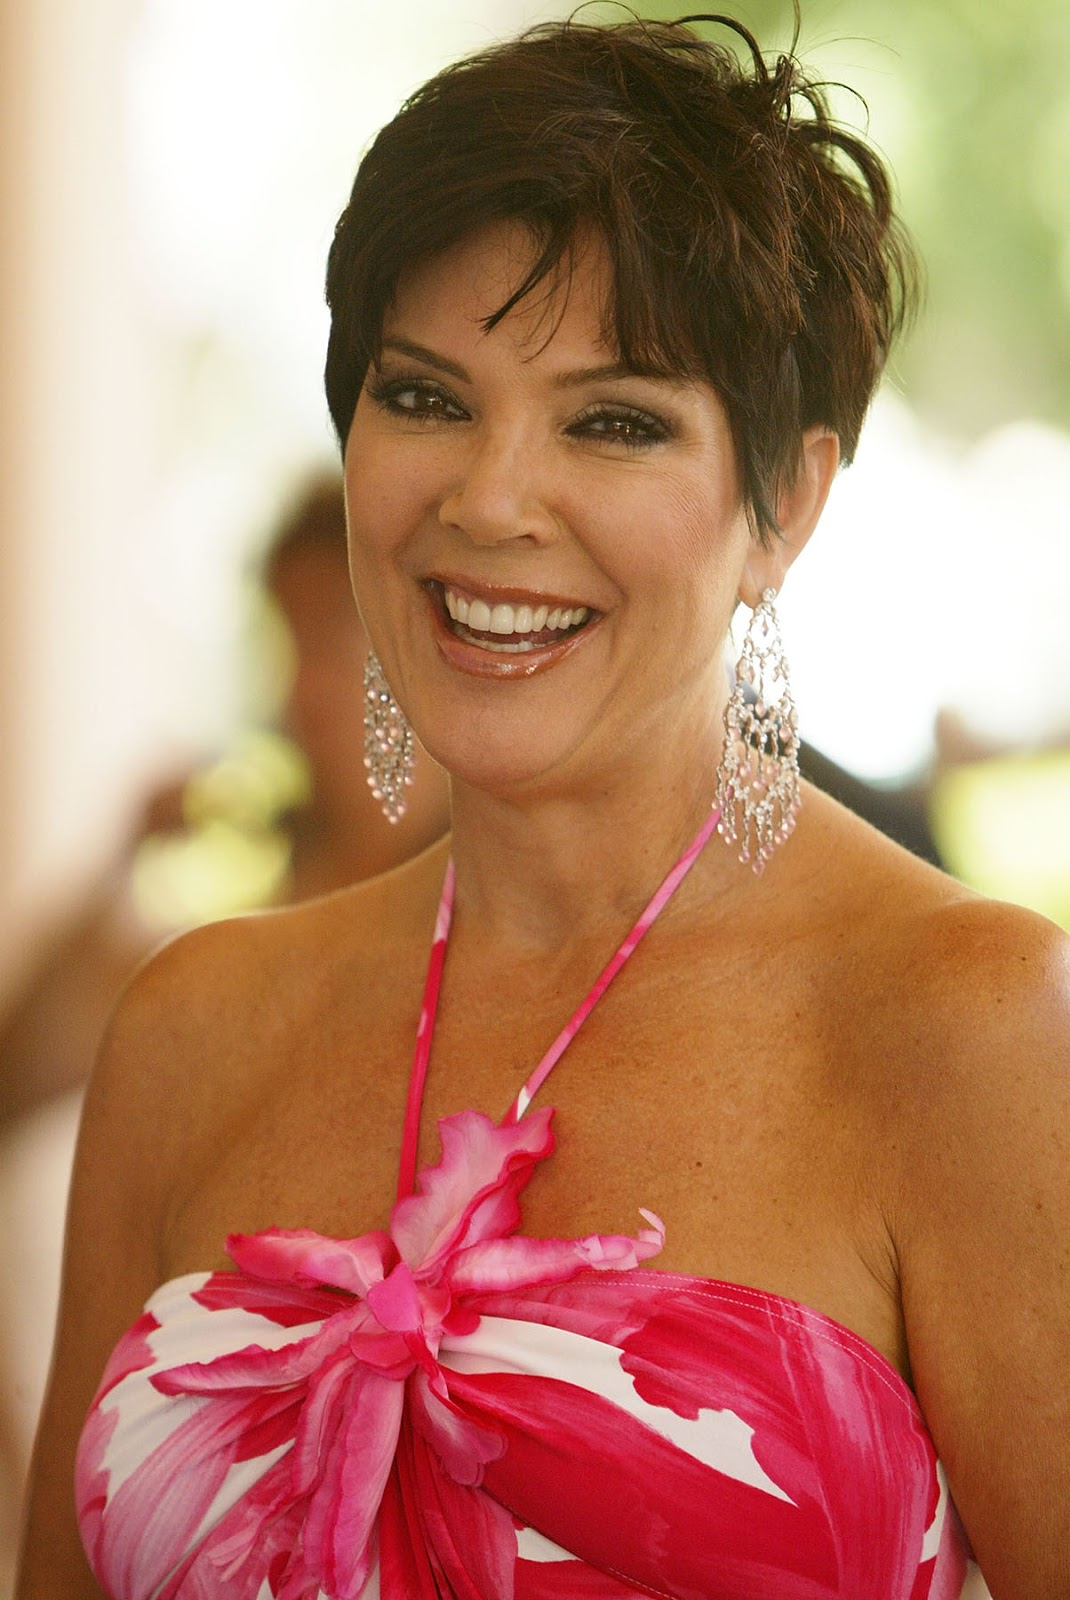 Chatter Busy: Did Kris Jenner Have Plastic Surgery